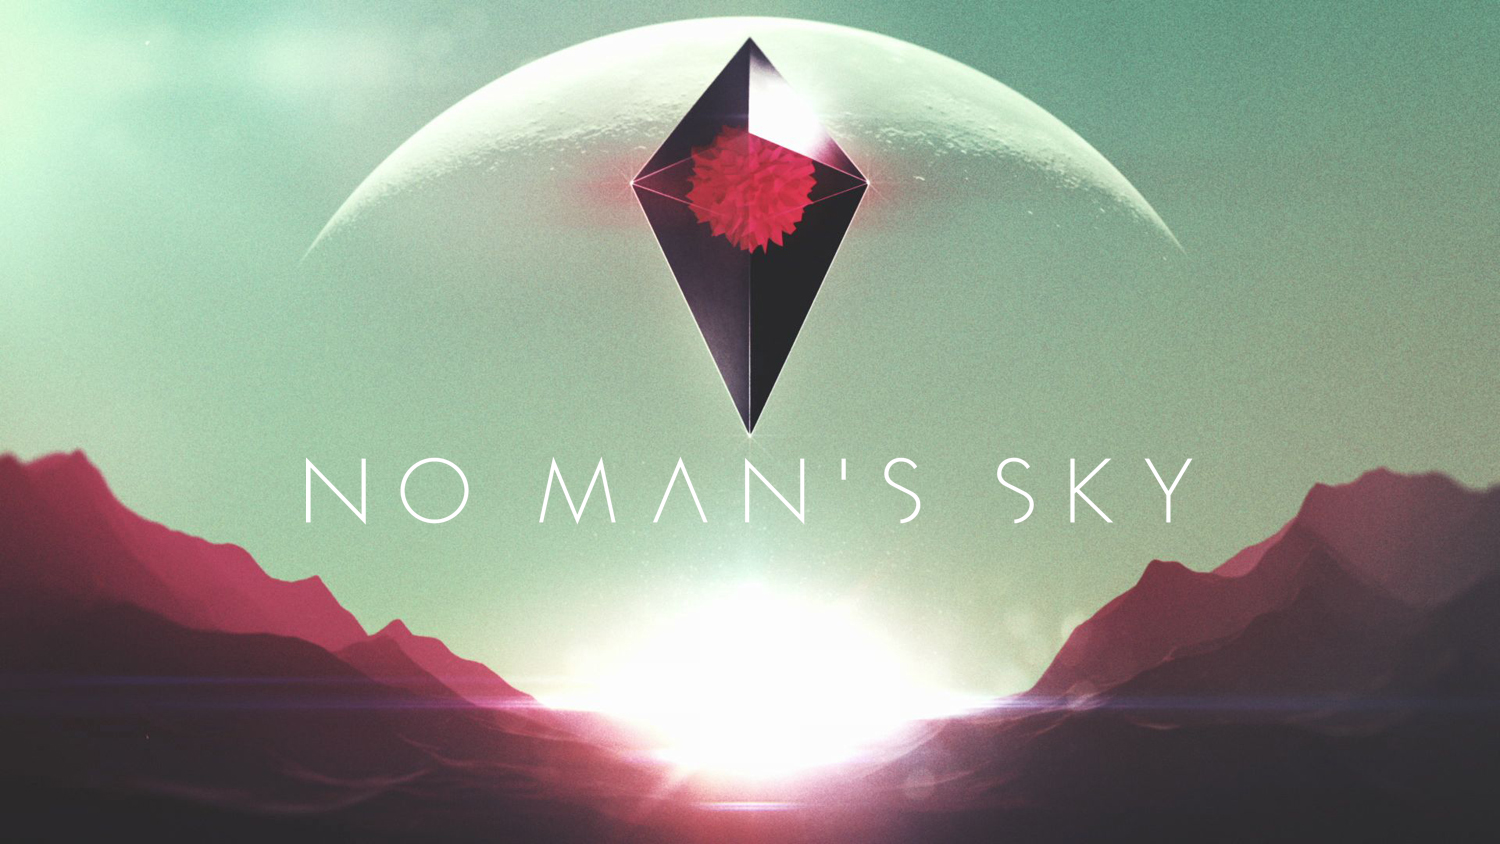 no mans sky background title picture